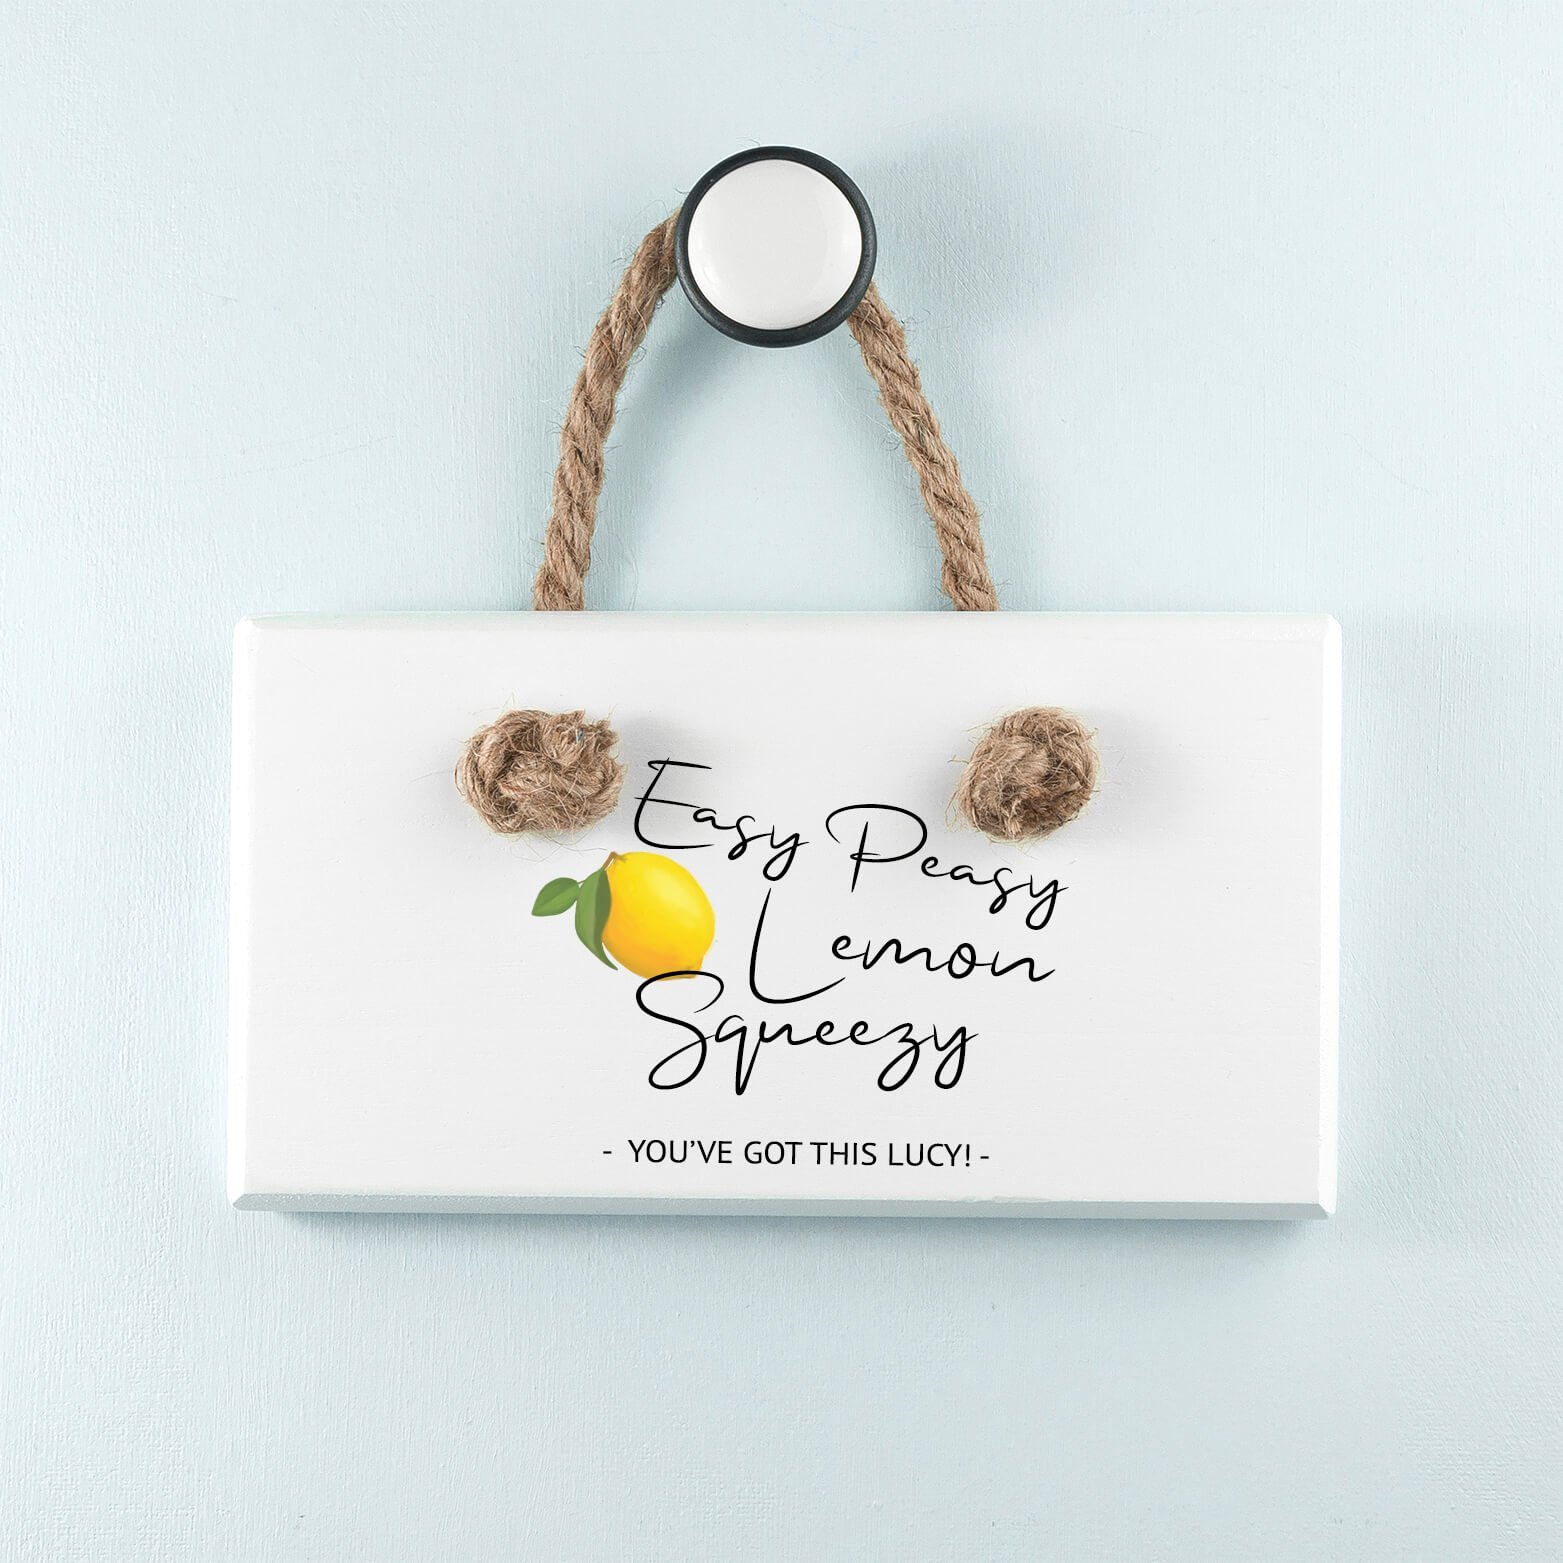 Personalised Wooden Sign – Easy Peasy Lemon Squeezy